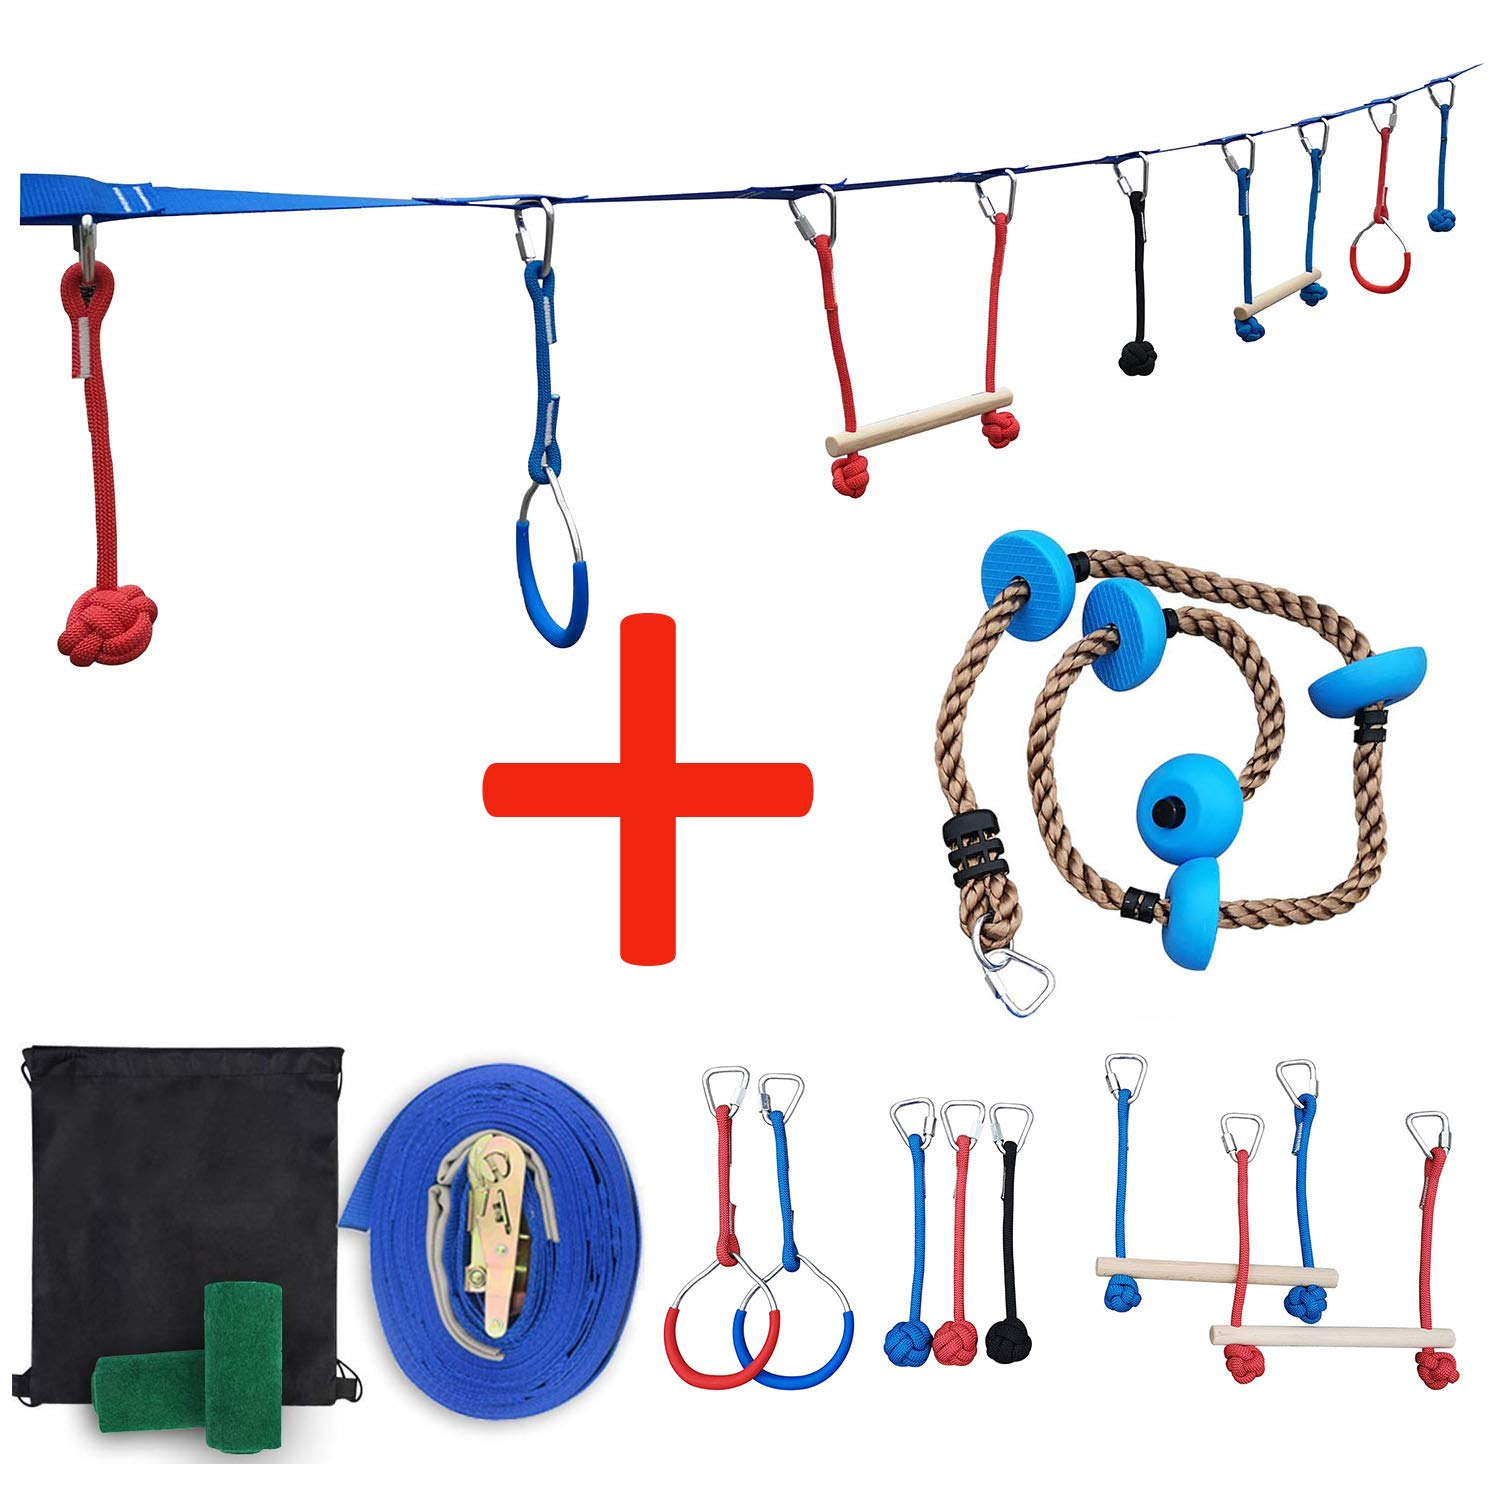 Patioline 45'' Ninja Slackline Monkey Bars Kit Jungle Gym Obstacle Course for Kids Warrior Training Equipment - 2 Monkey Bars, 2 Gymnastics Rings, 3 Knot Fists,6.5ft Climbing Rope by Patioline